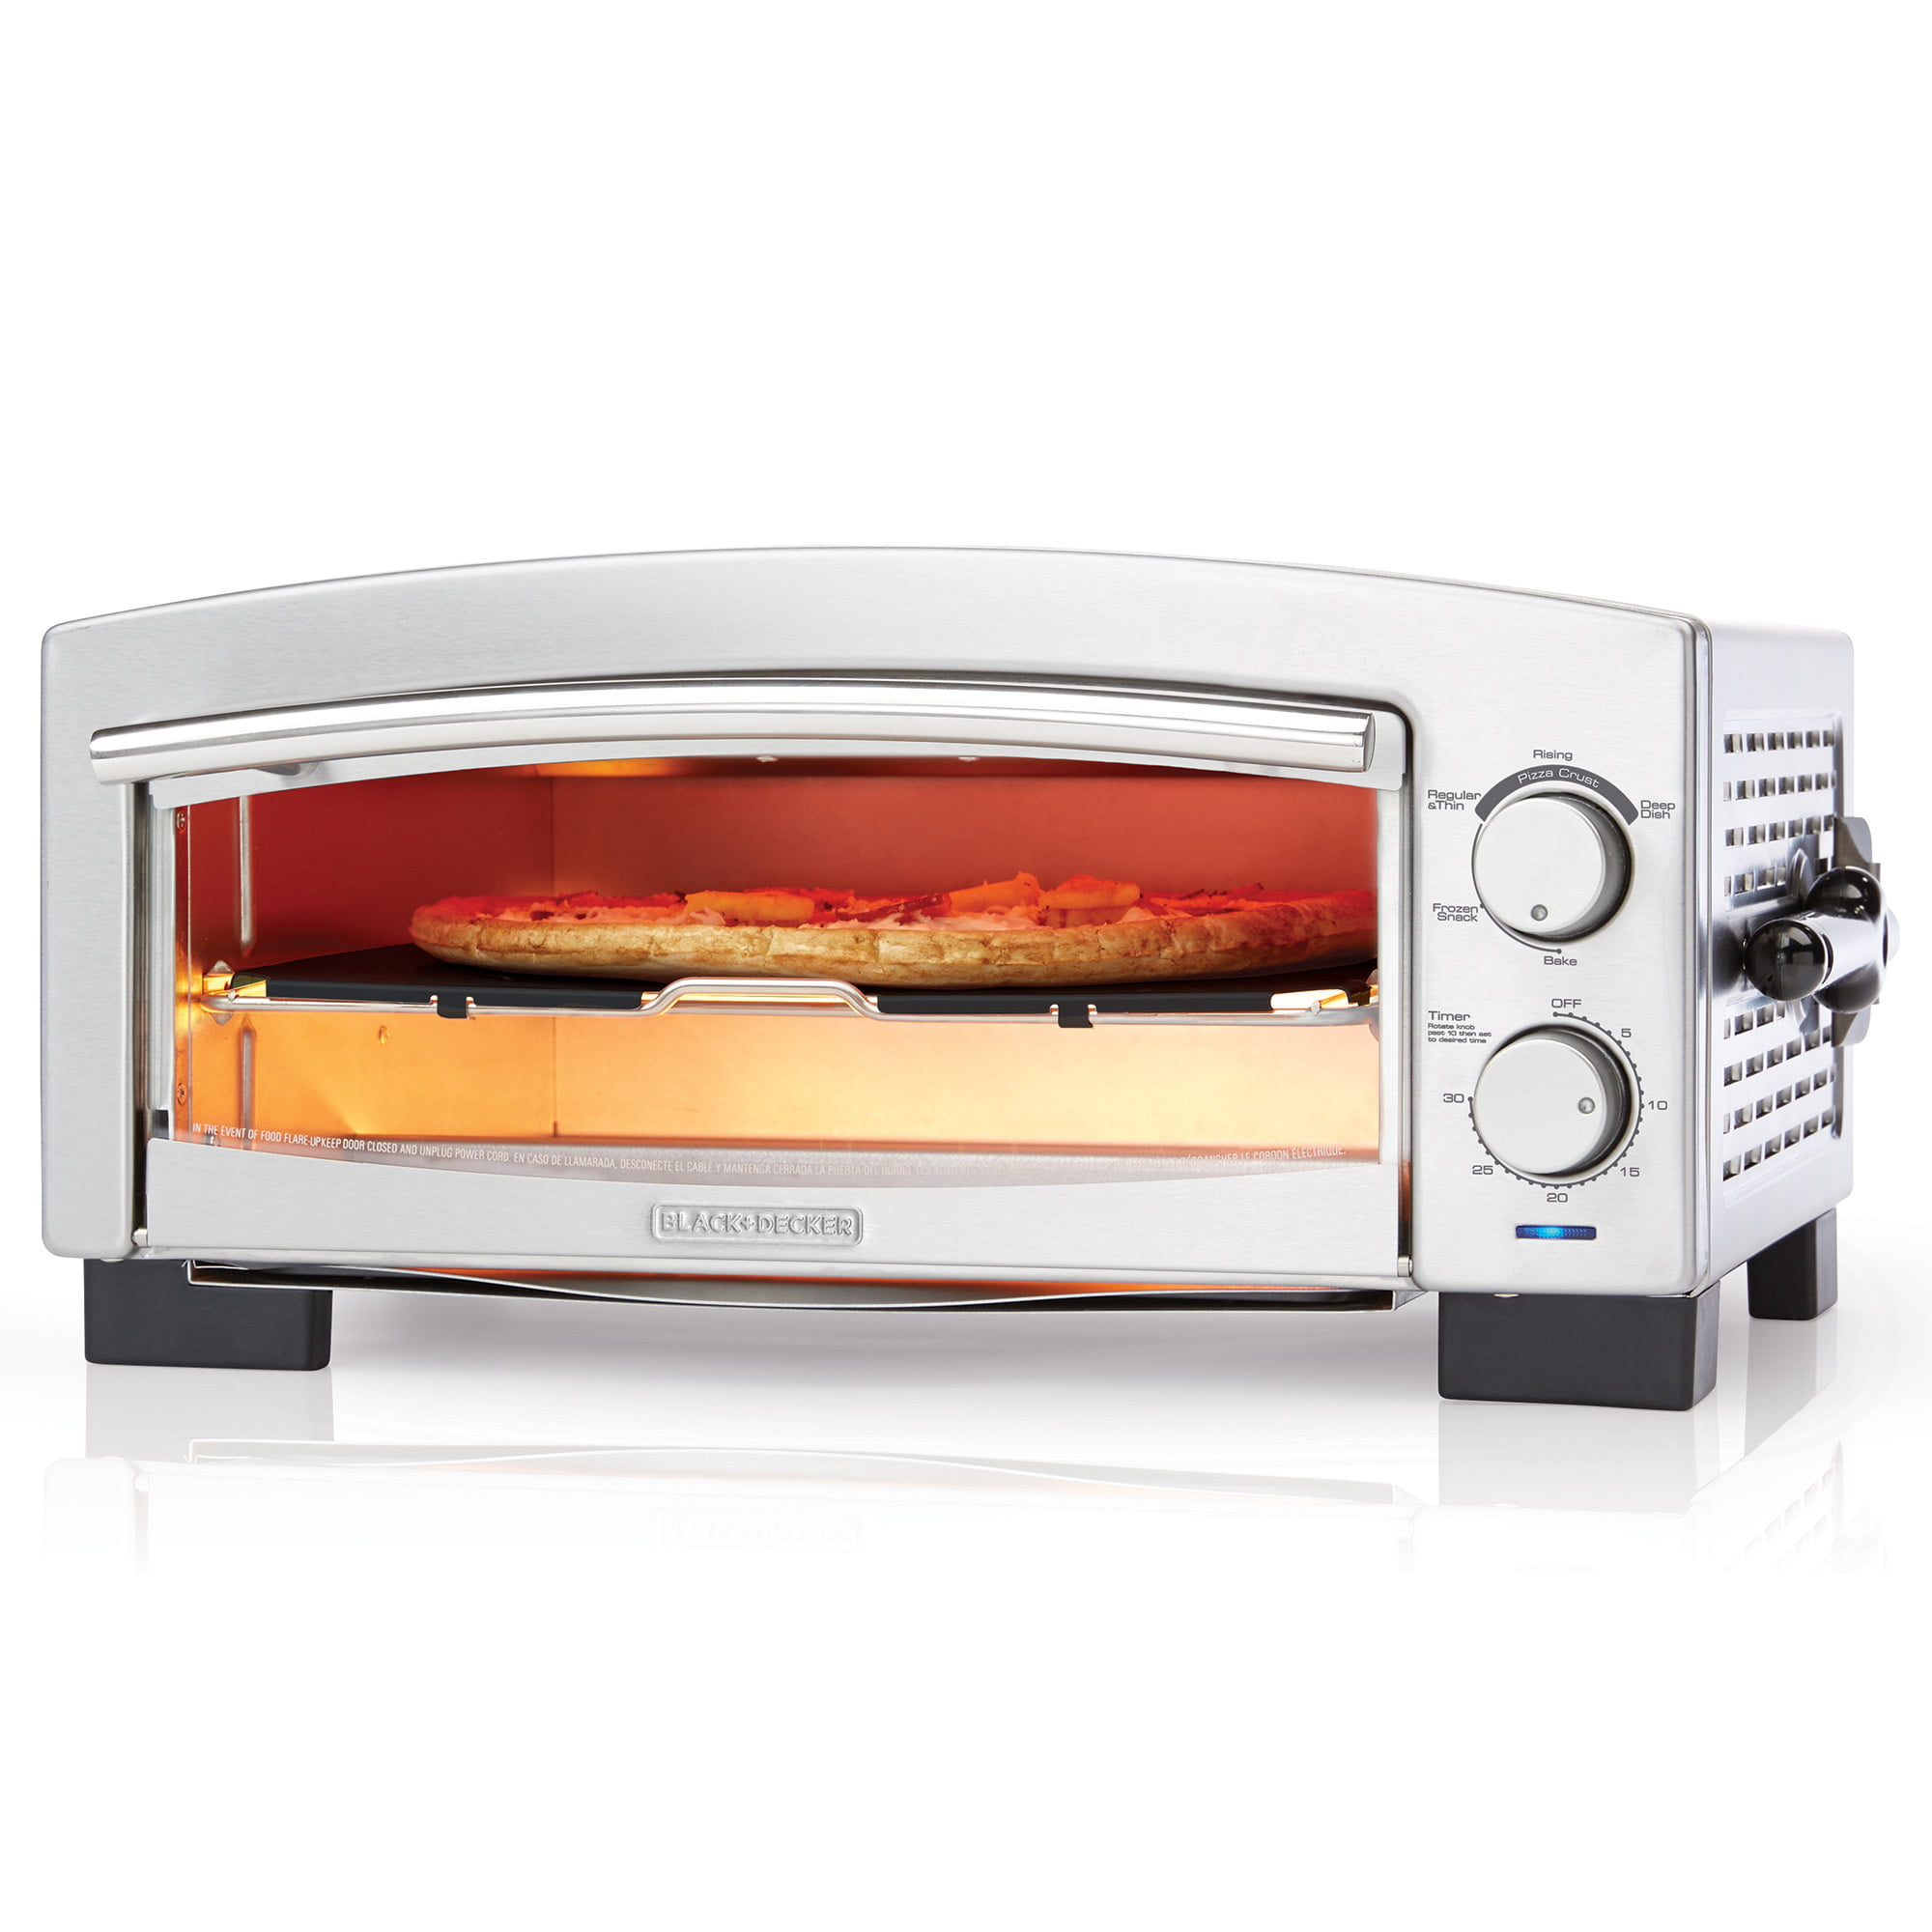 Black & Decker 5-Minute Pizza Oven and Snack Maker, Stainless Steel, P300S by BLACK DECKER